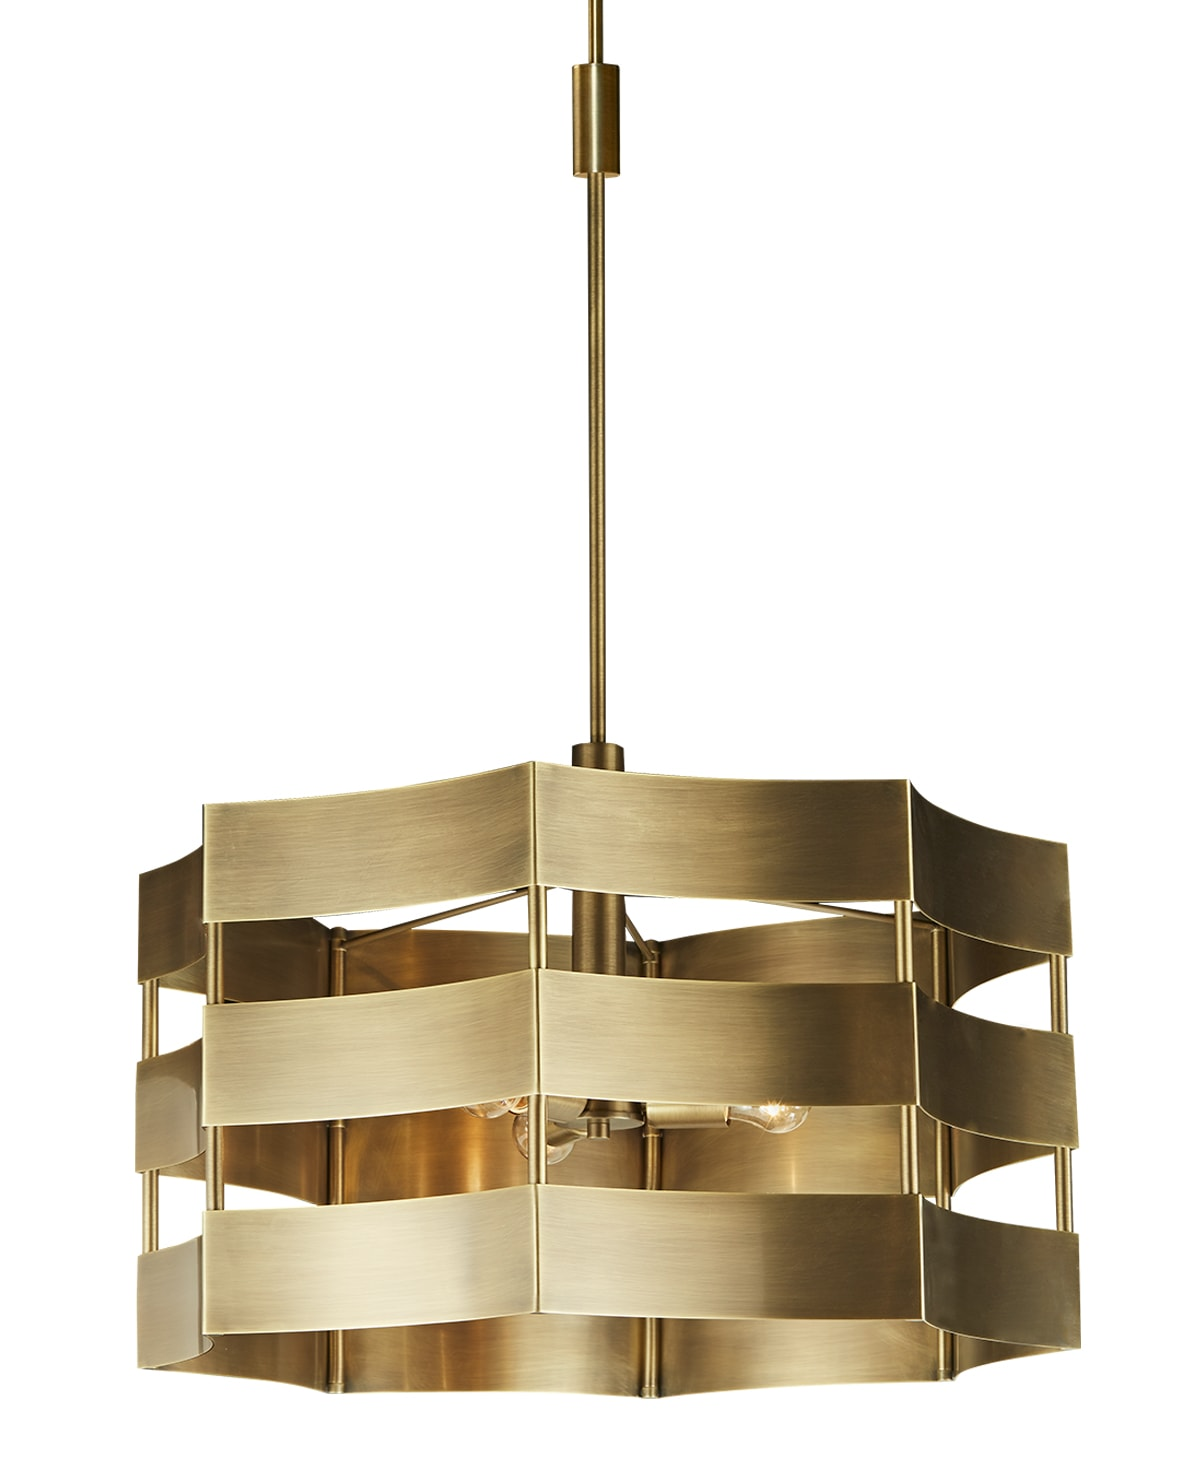 FlowDecor Corsica Chandelier in metal with antique brass finish (# 6045)